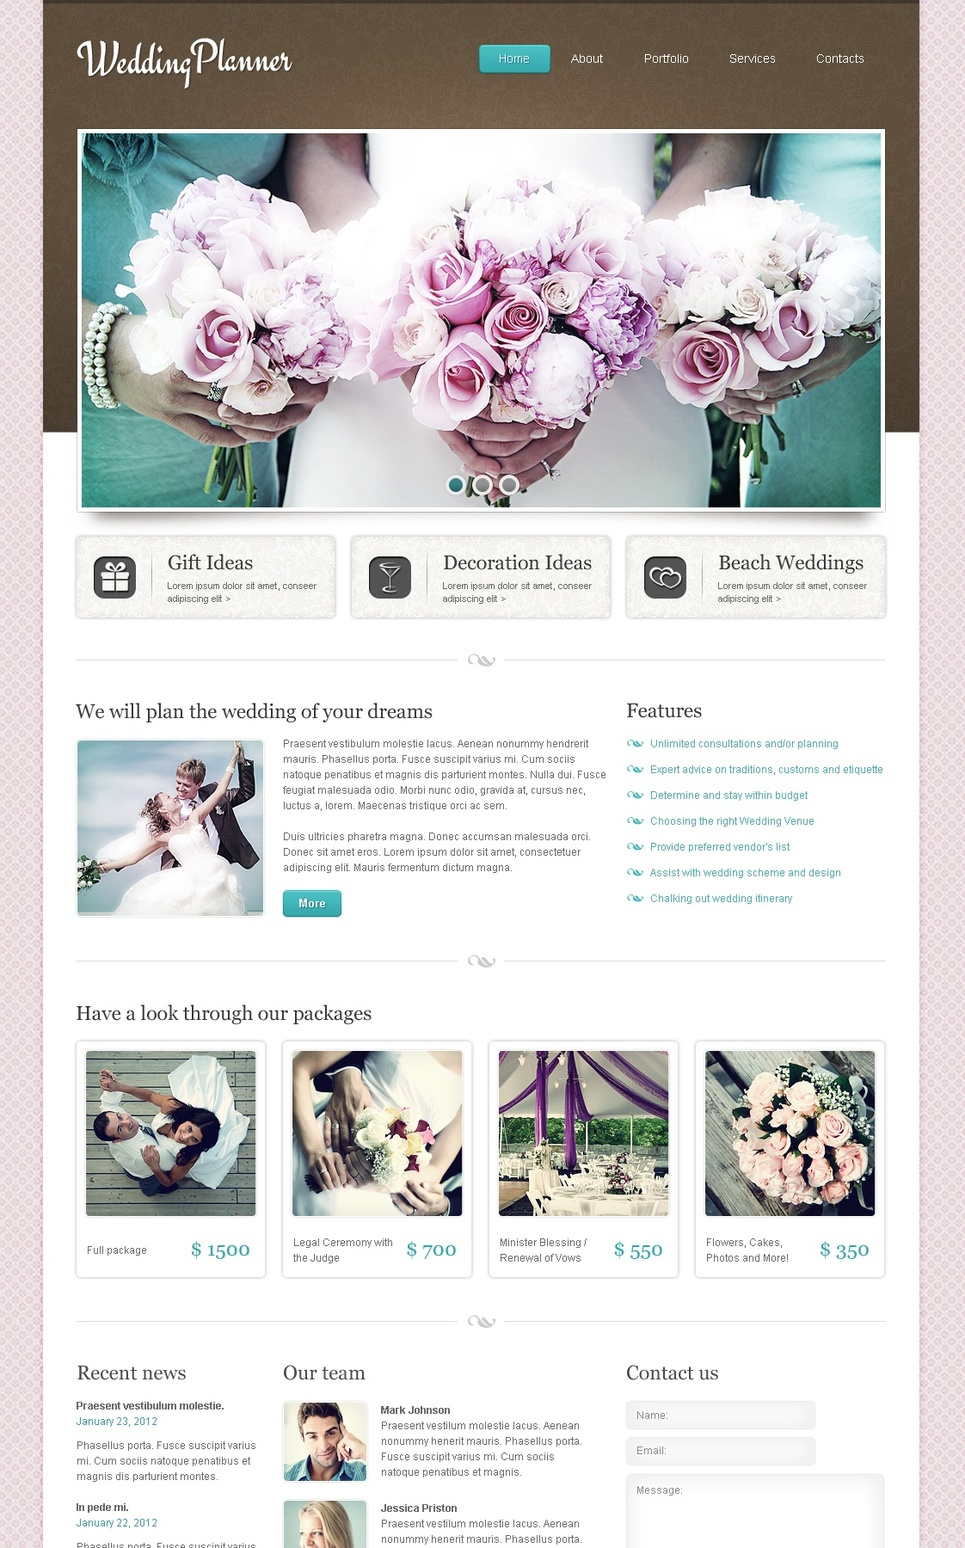 Wedding Planner Template with Pink Background and jQuery Image Slider - image